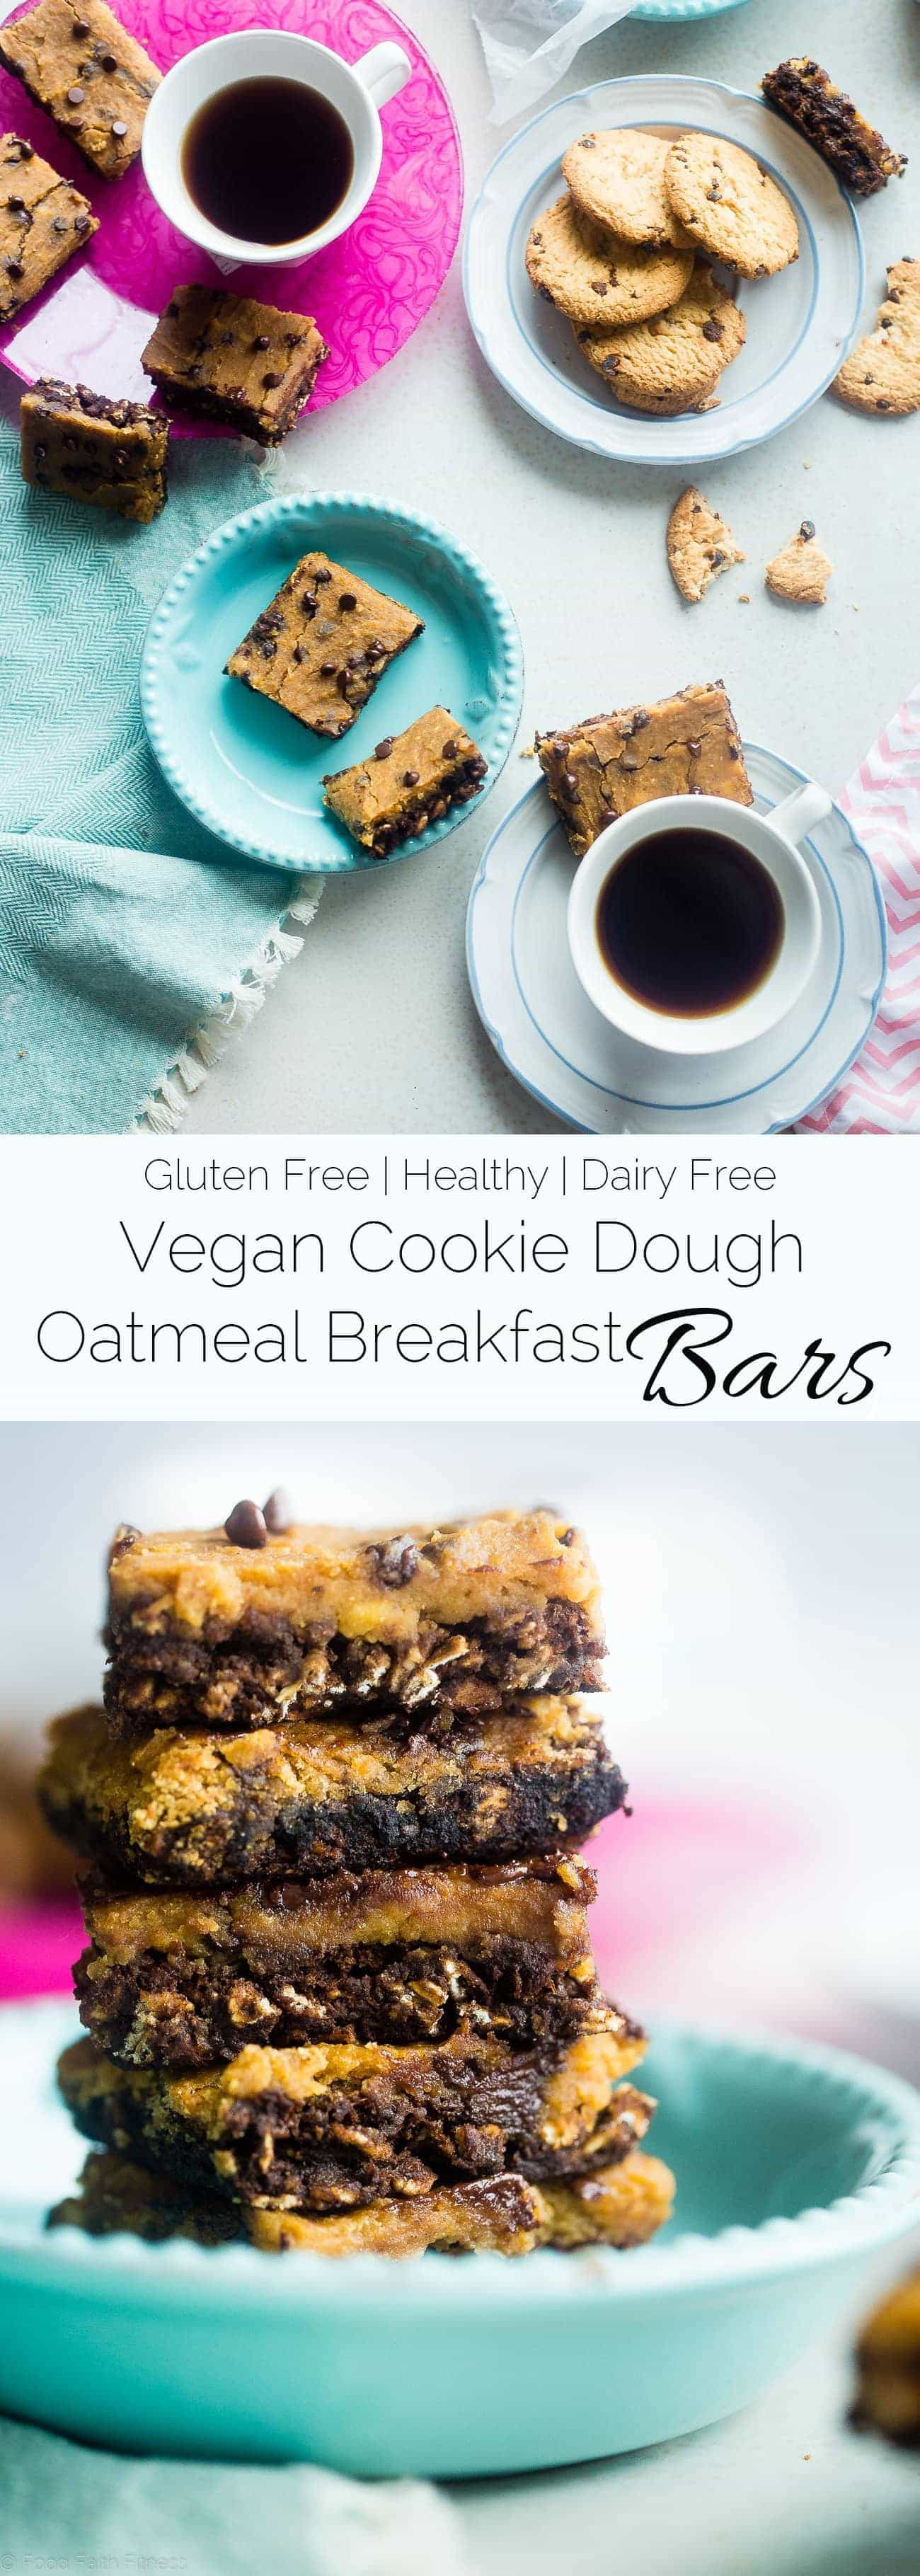 Vegan Cookie Dough Oatmeal Breakfast Bars - These gluten free breakfast bars let you feel like you're having dessert for breakfast! They're an easy, portable option to have for busy mornings! Great for meal prep! | Foodfaithfitness.com | @FoodFaithFit